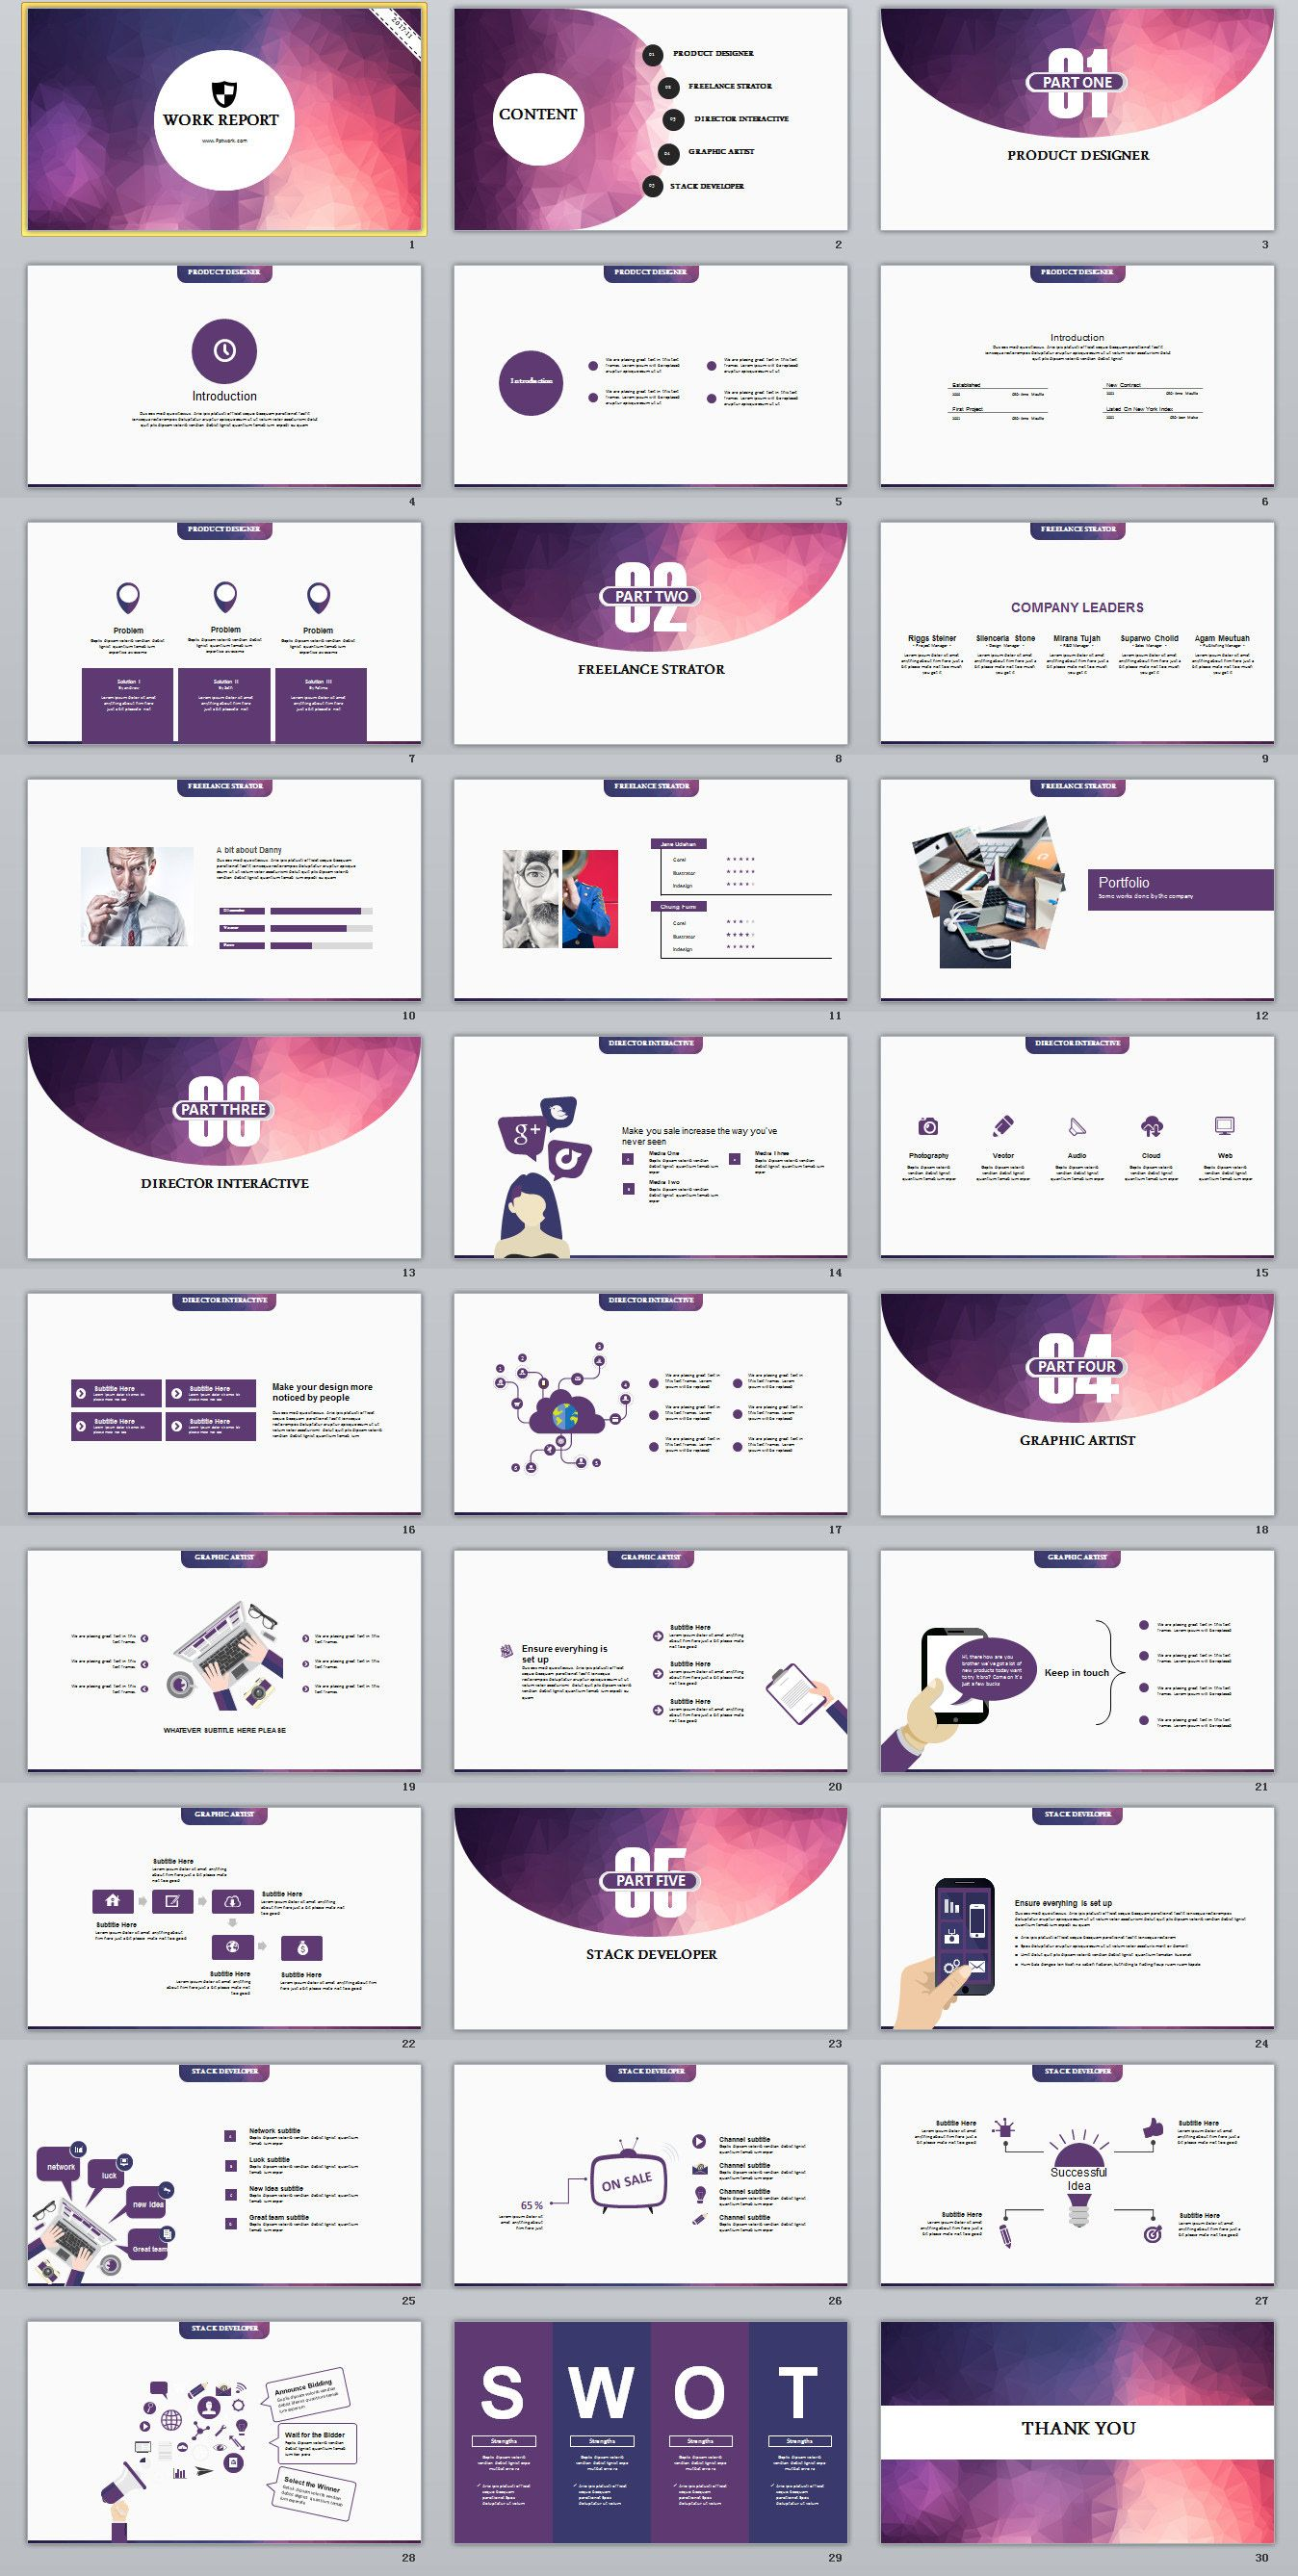 30 purple slide report powerpoint templates on behance powerpoint 30 purple slide report powerpoint templates on behance powerpoint templates presentation toneelgroepblik